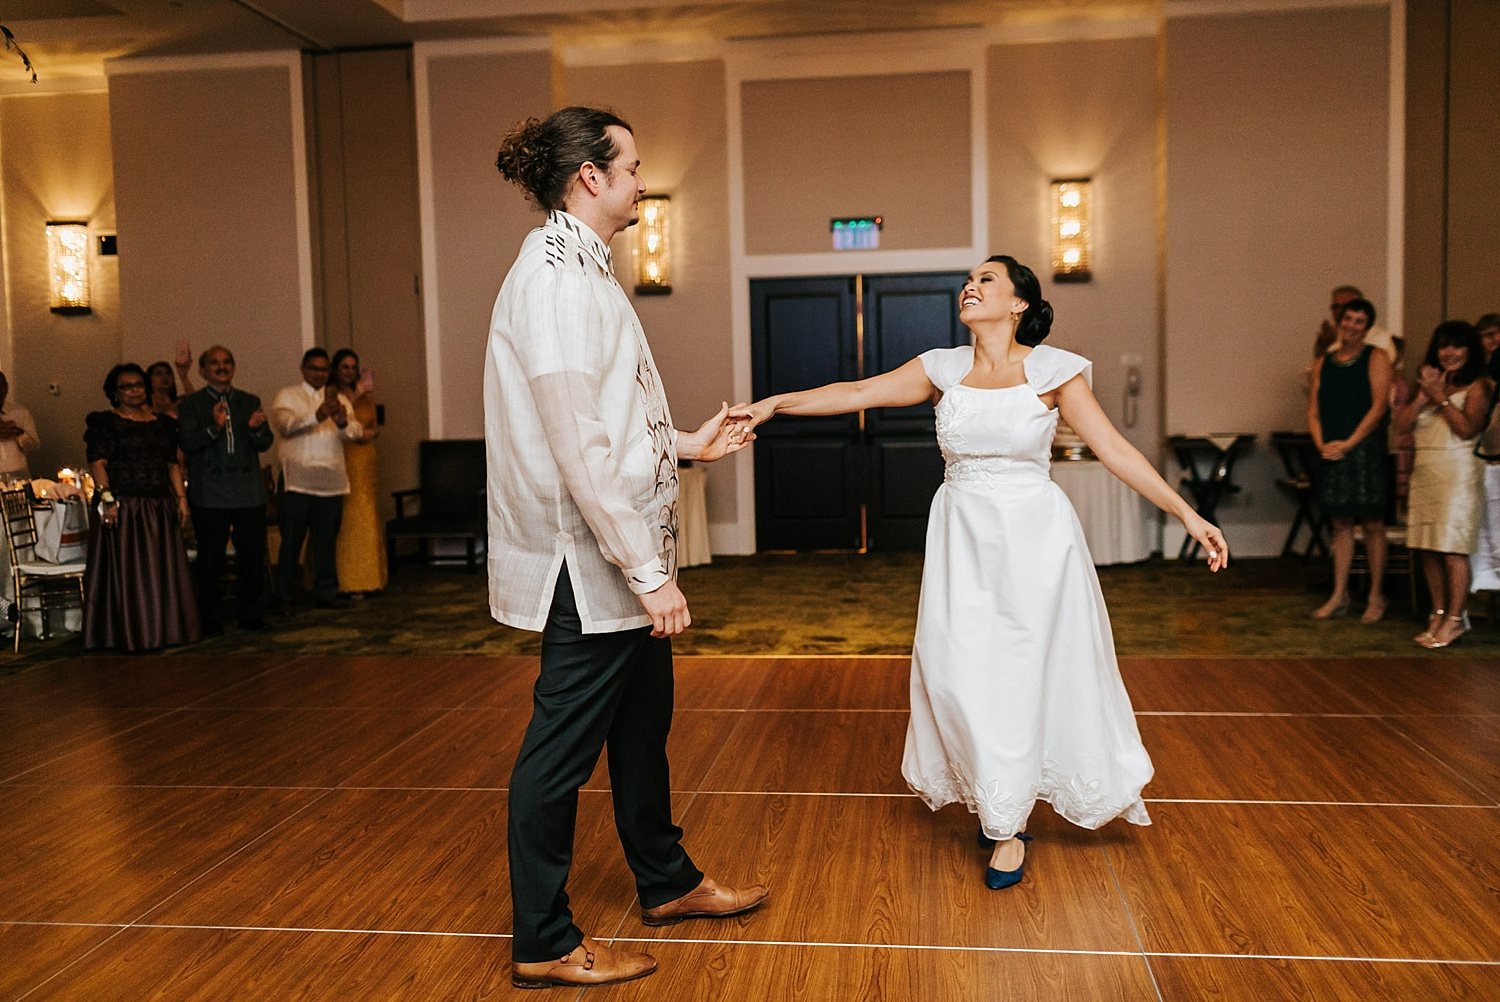 Bride and groom first dance at inn at penn